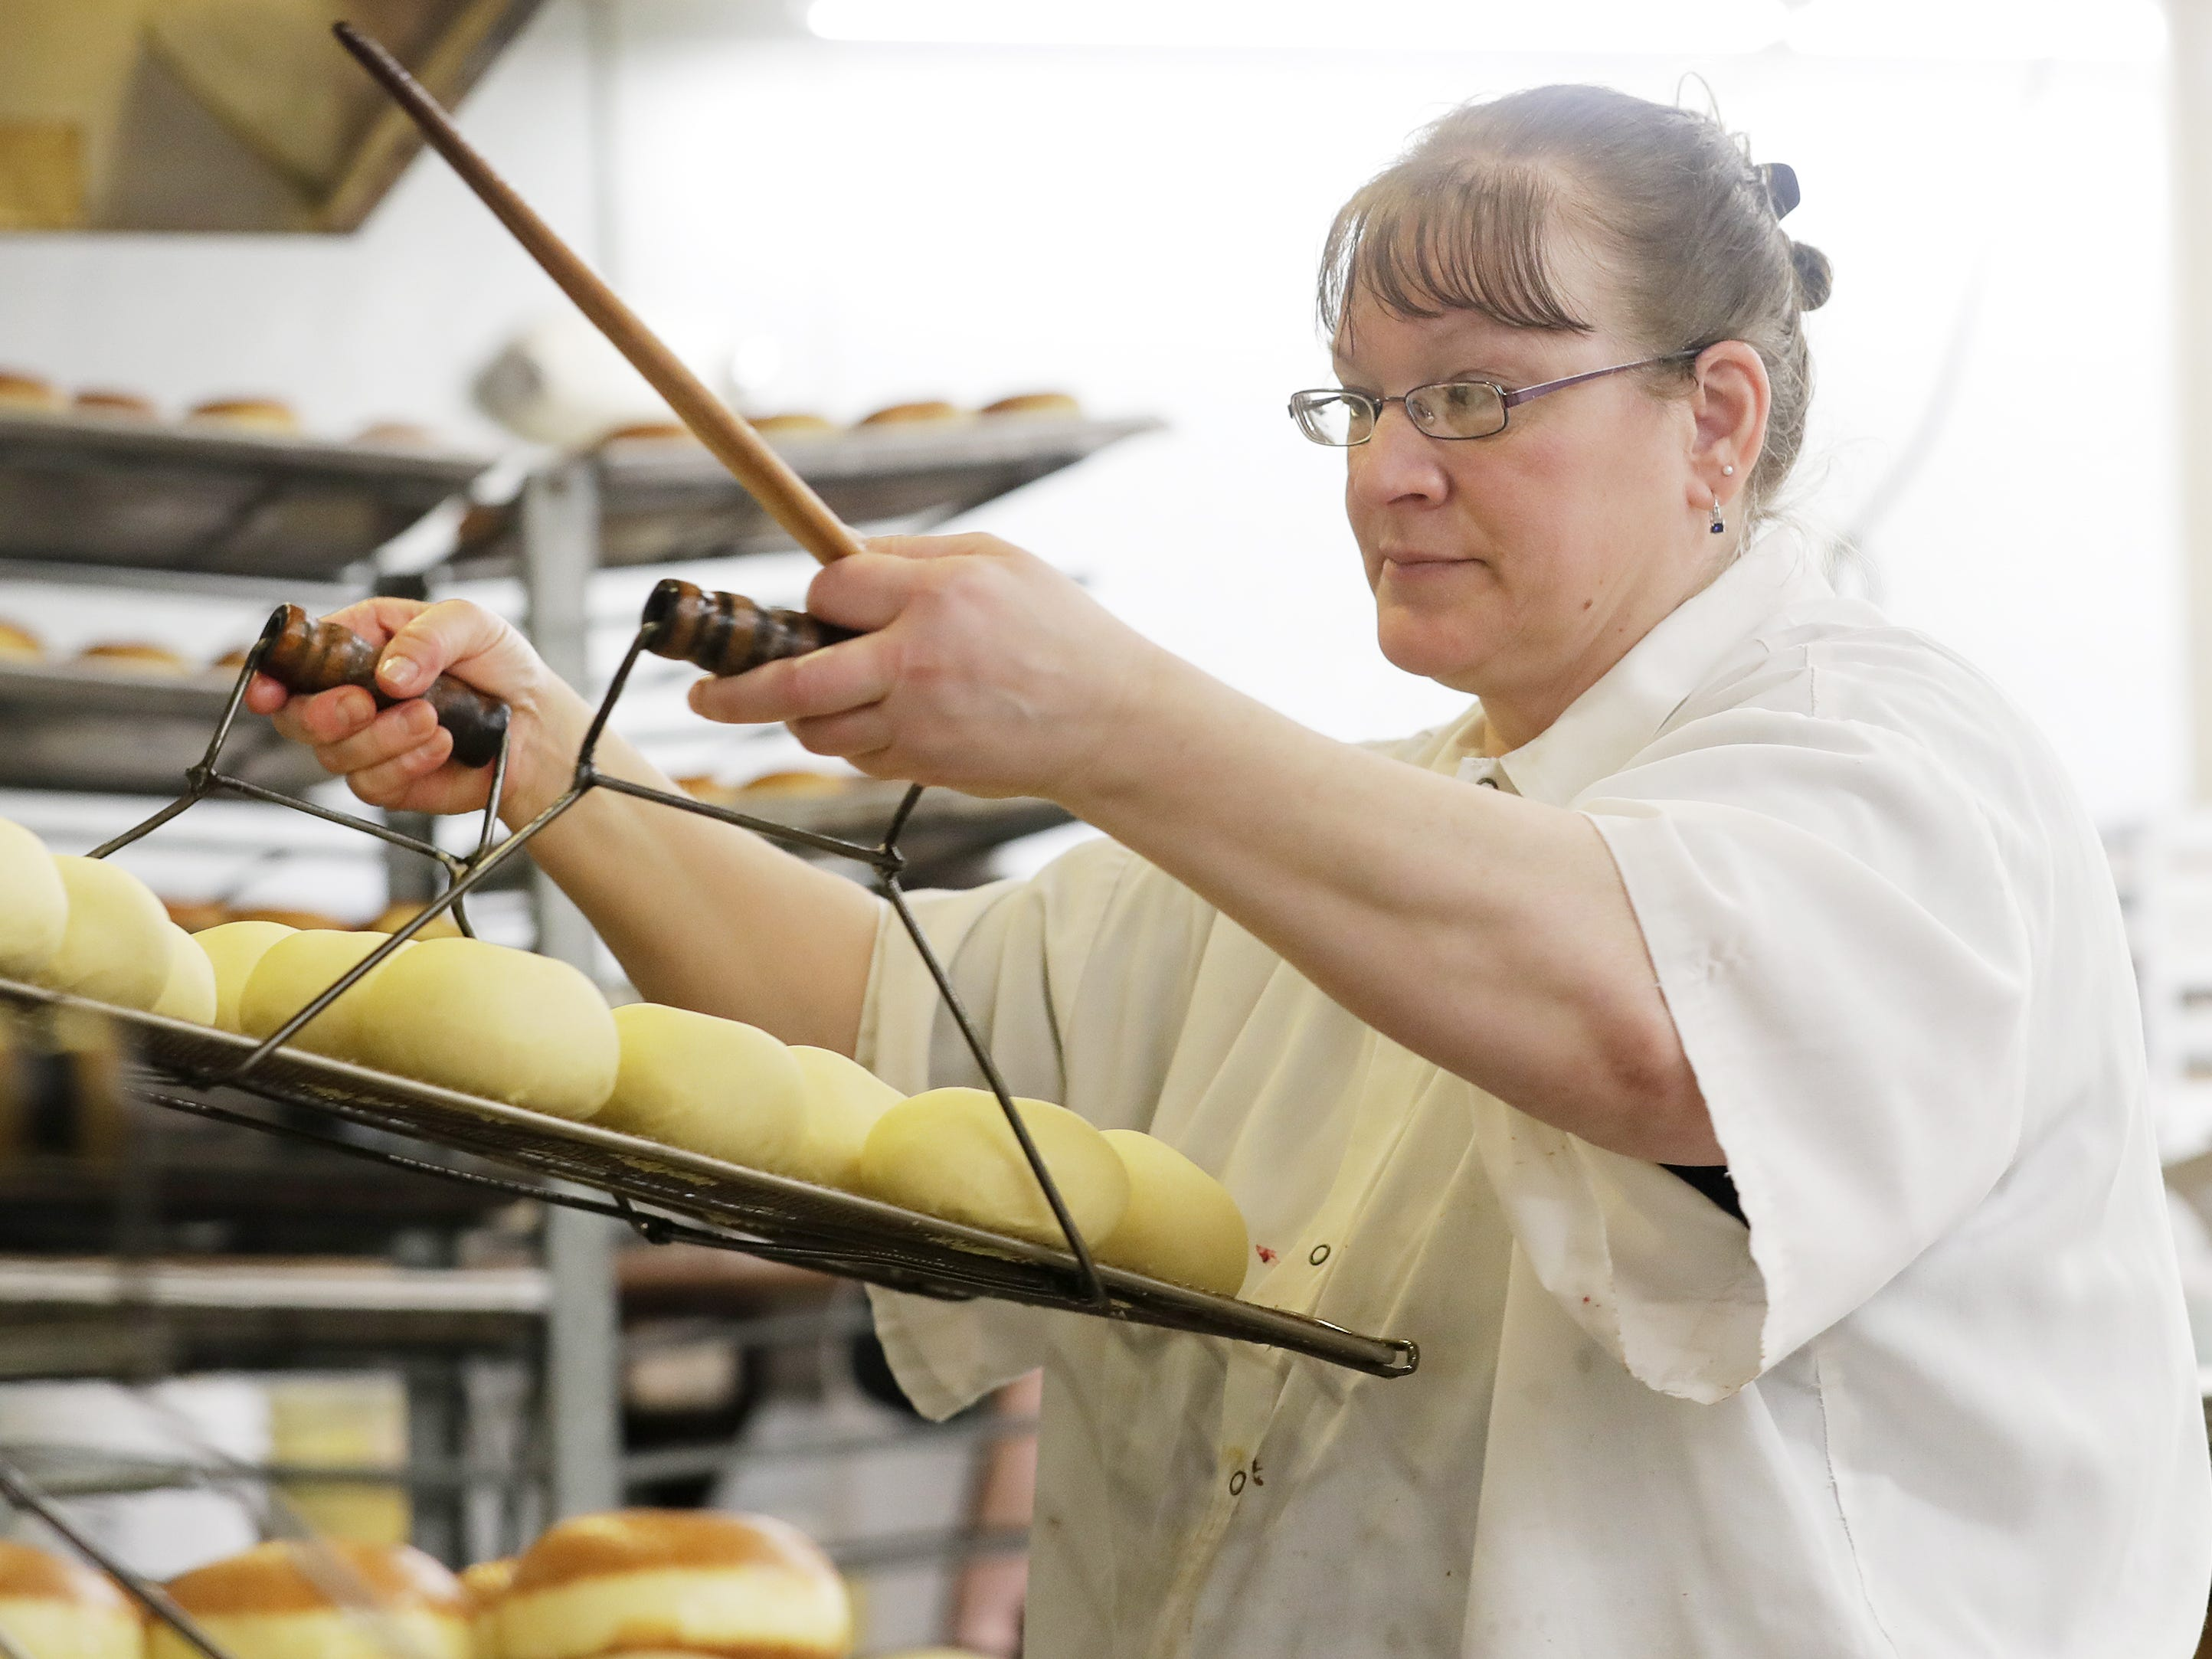 Janice Smurawa puts a batch of paczki in the fryer at Smurawa's Country Bakery on Tuesday, Feb. 26, 2019, in Pulaski.